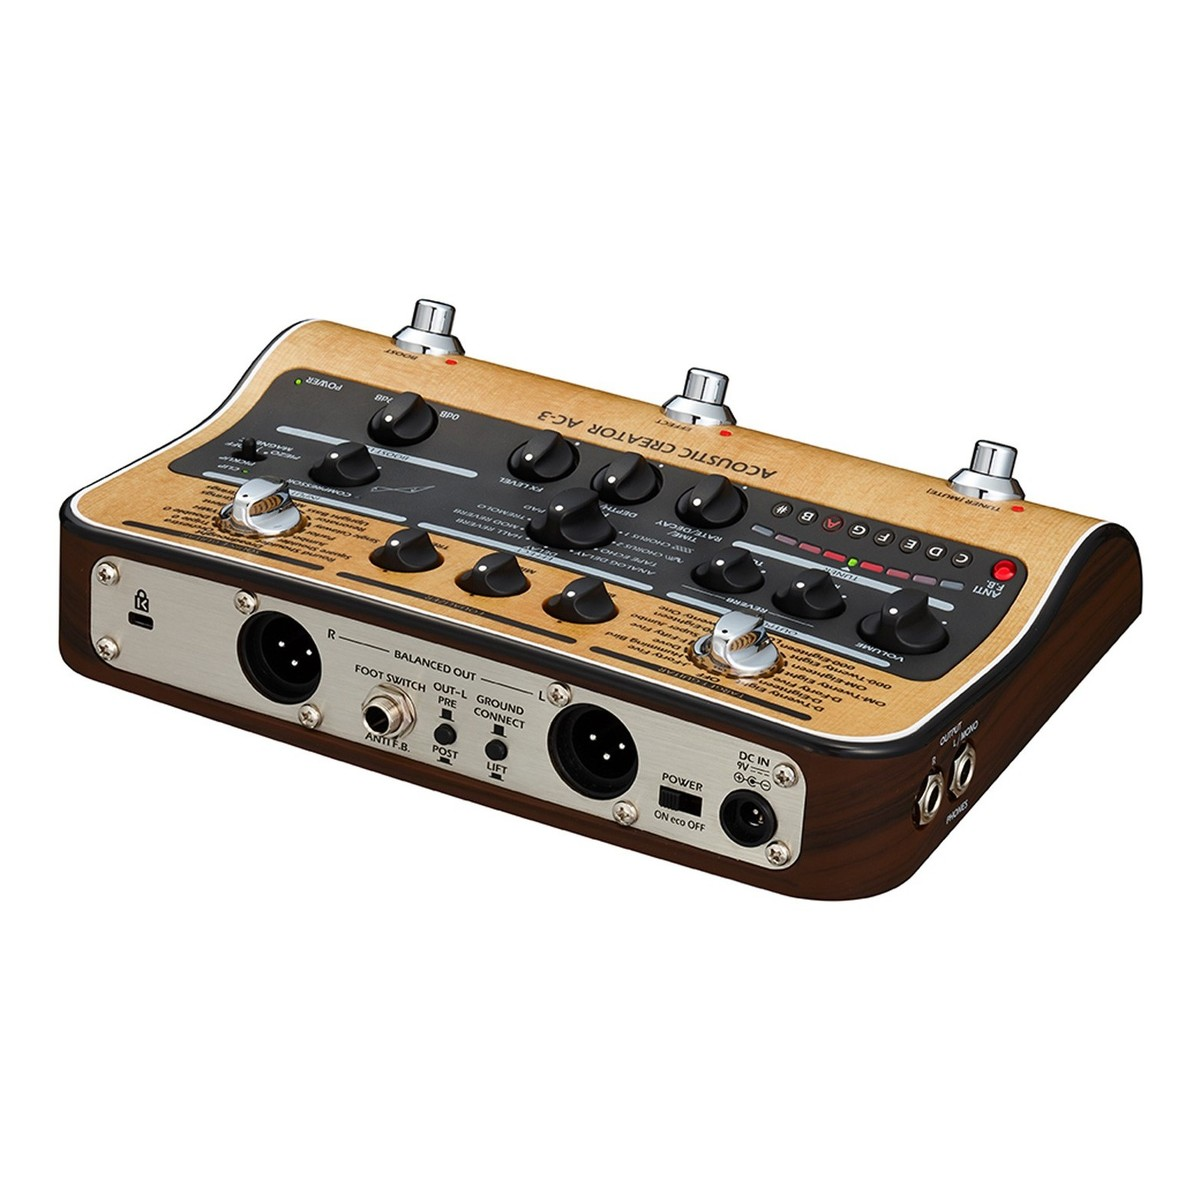 zoom ac 3 acoustic creator pedal at gear4music. Black Bedroom Furniture Sets. Home Design Ideas